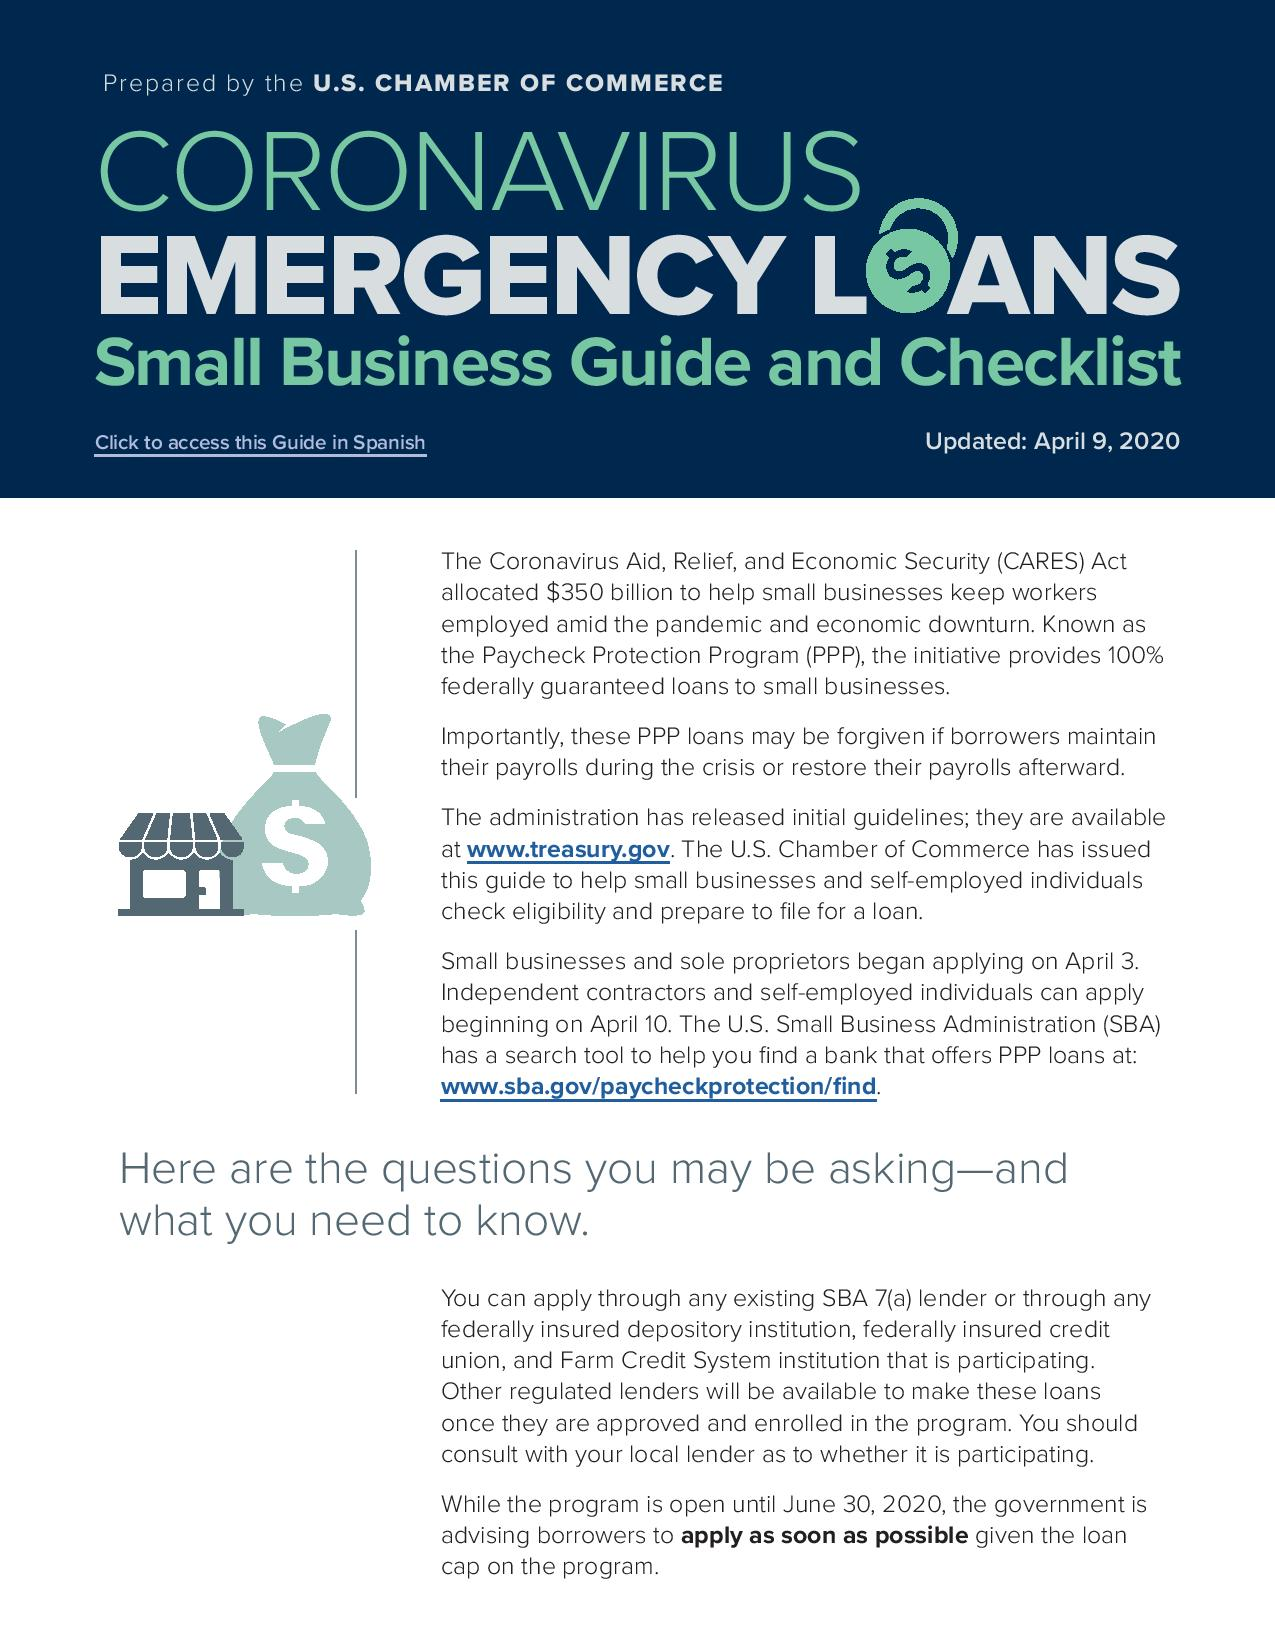 Emergency Loans: Small<br>Business Guide